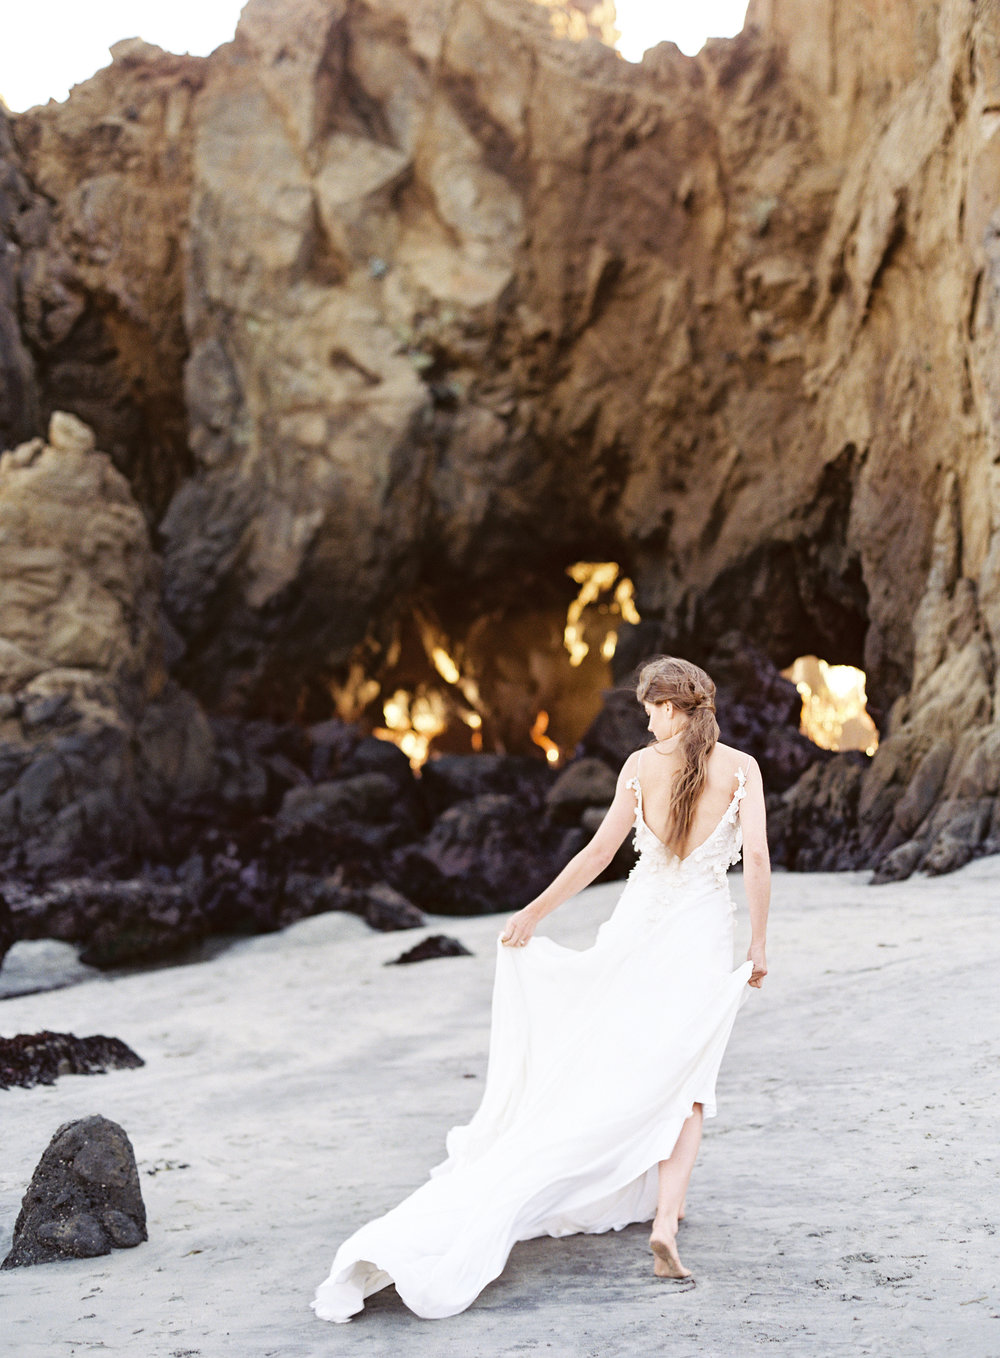 Big_Sur_by_Kayla_Barker_086.jpg